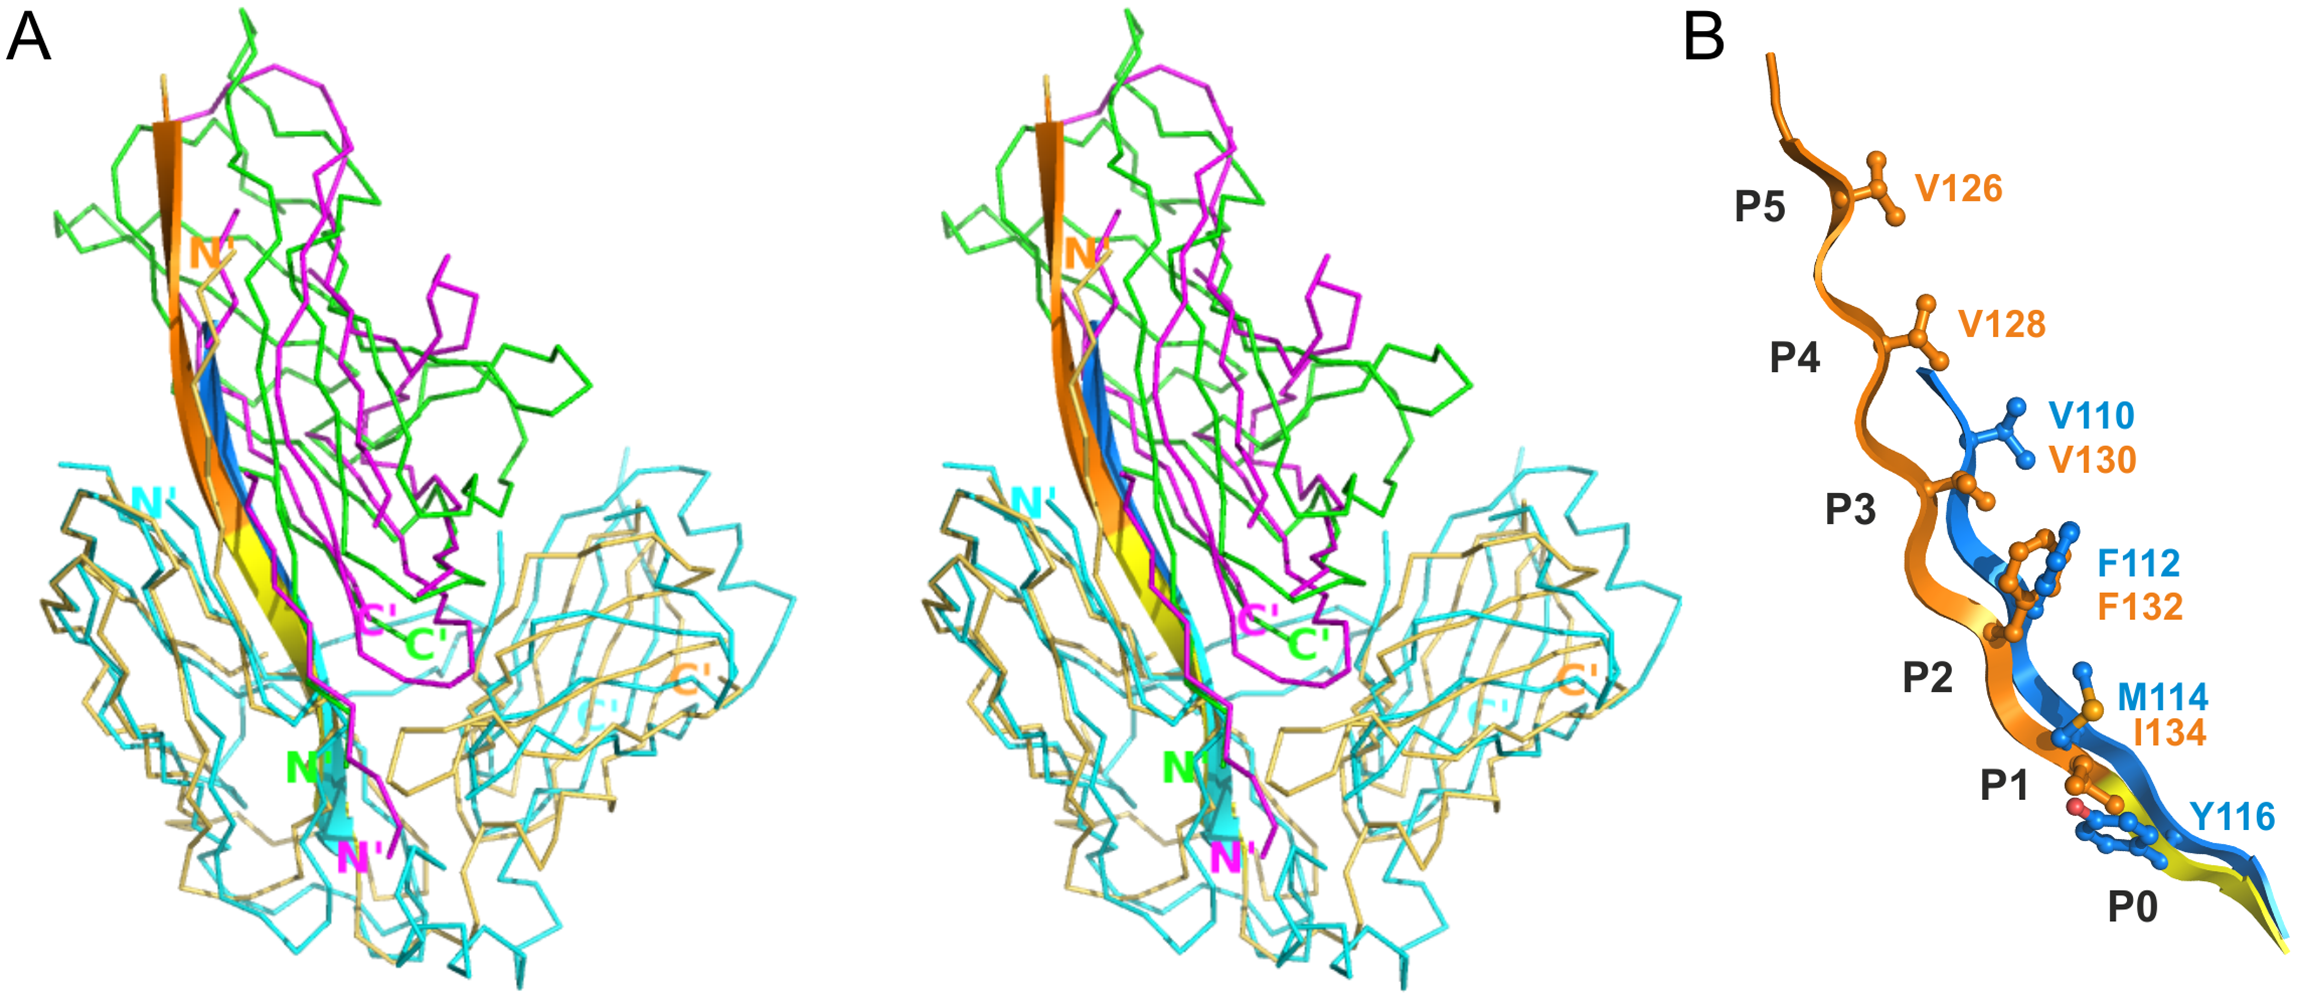 Differences in the register of donor residues and position of the subunit in CsuC:CsuA/B and complexes from classical systems.